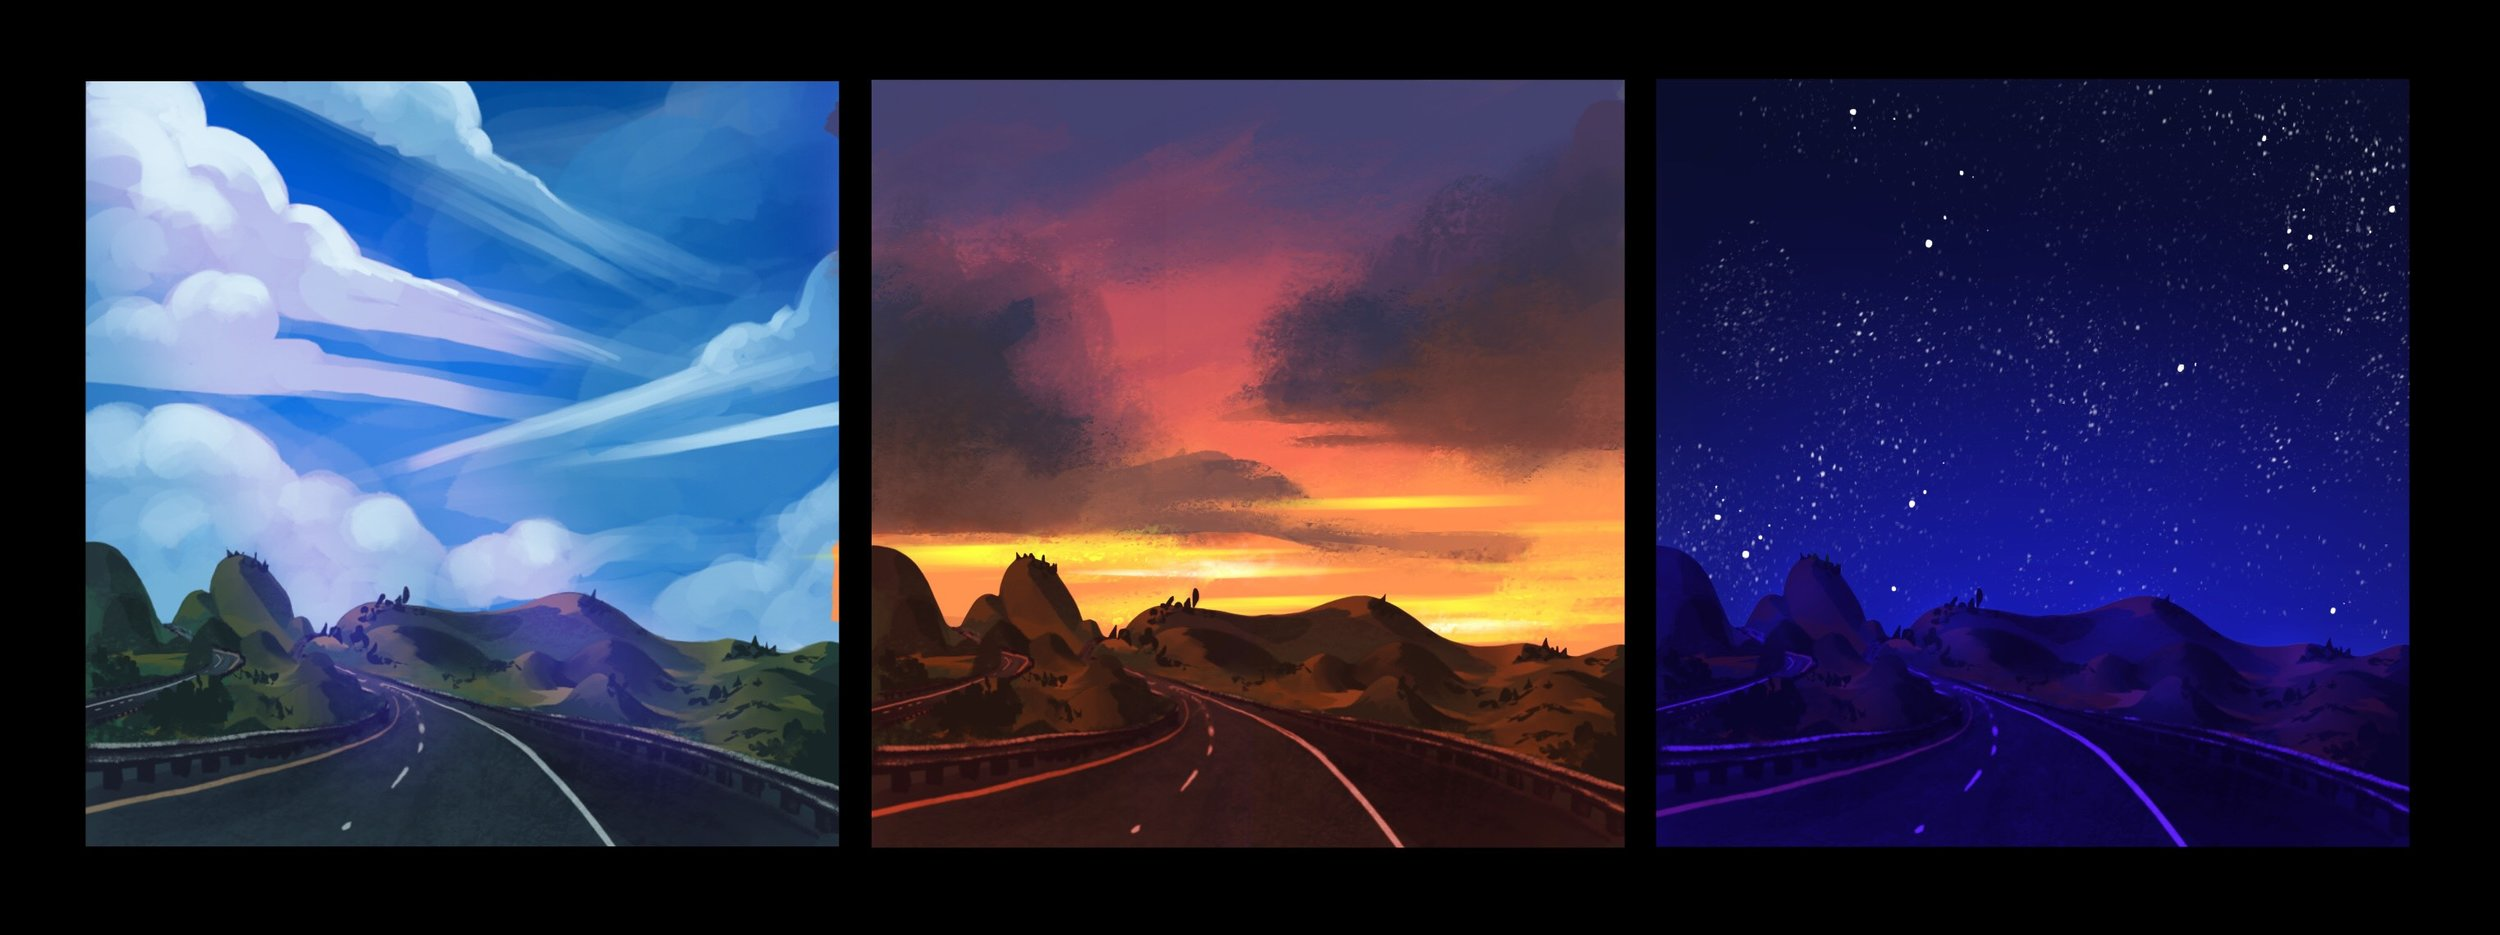 Lighting study from photograph taken on road trip. Programs: Procreate, Photoshop